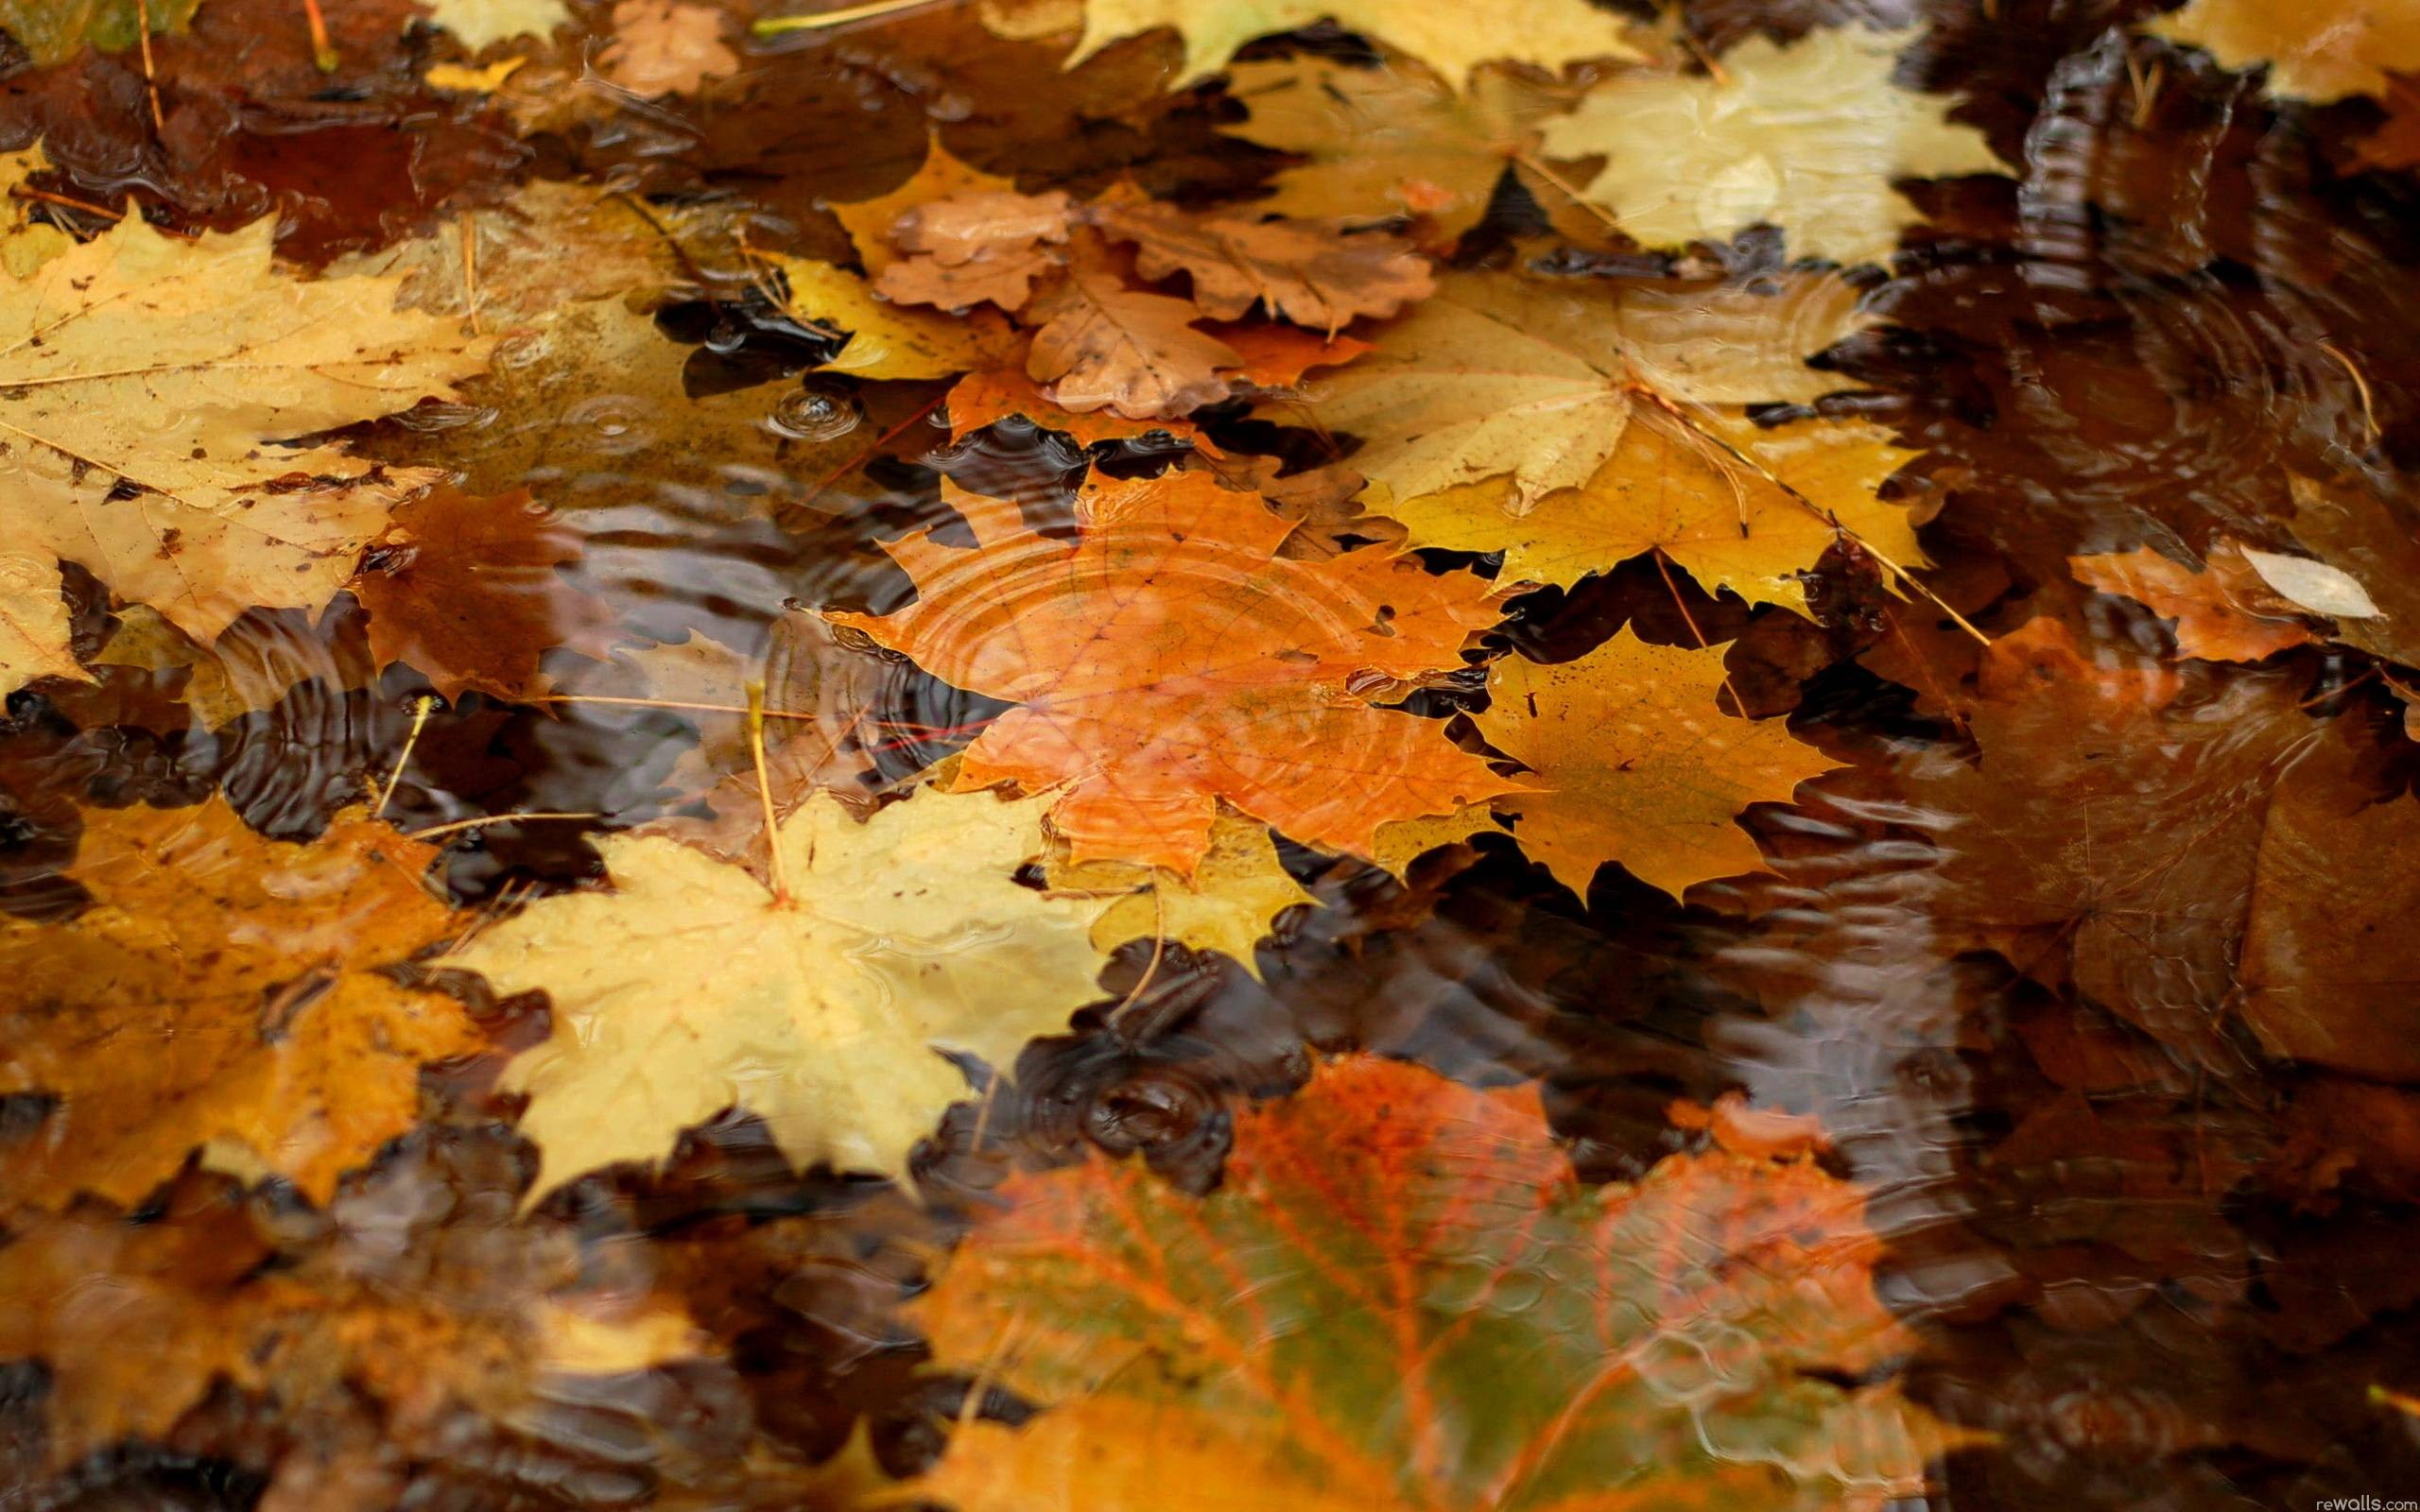 Late Fall Iphone Wallpaper Autumn Wallpaper Hd 183 ① Download Free Wallpapers For